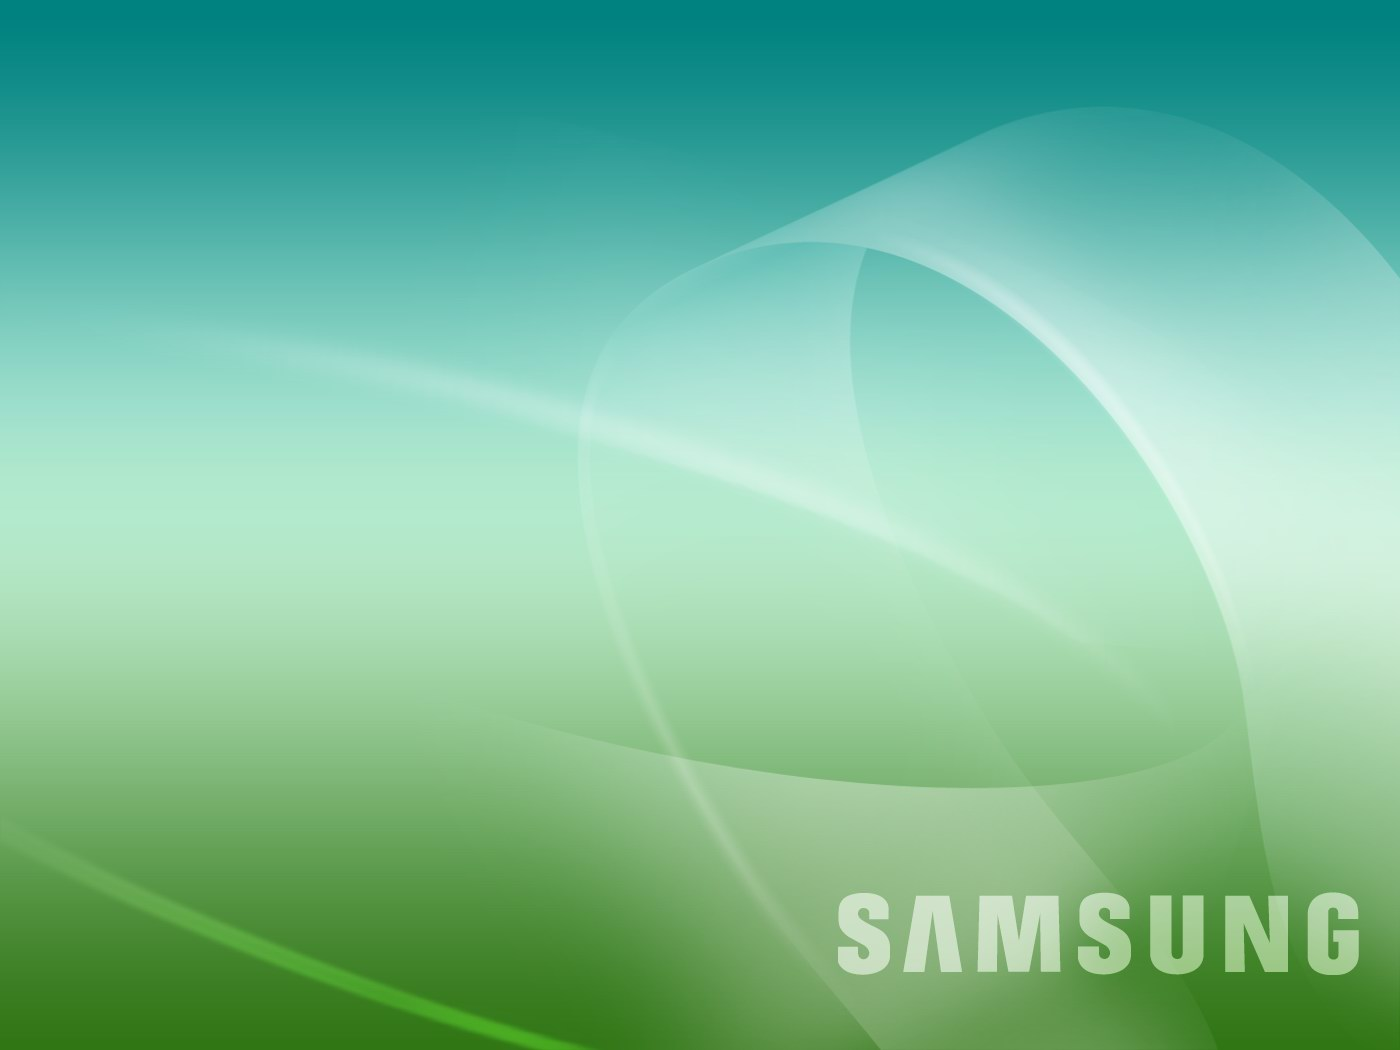 Samsung Wallpaper Download Free